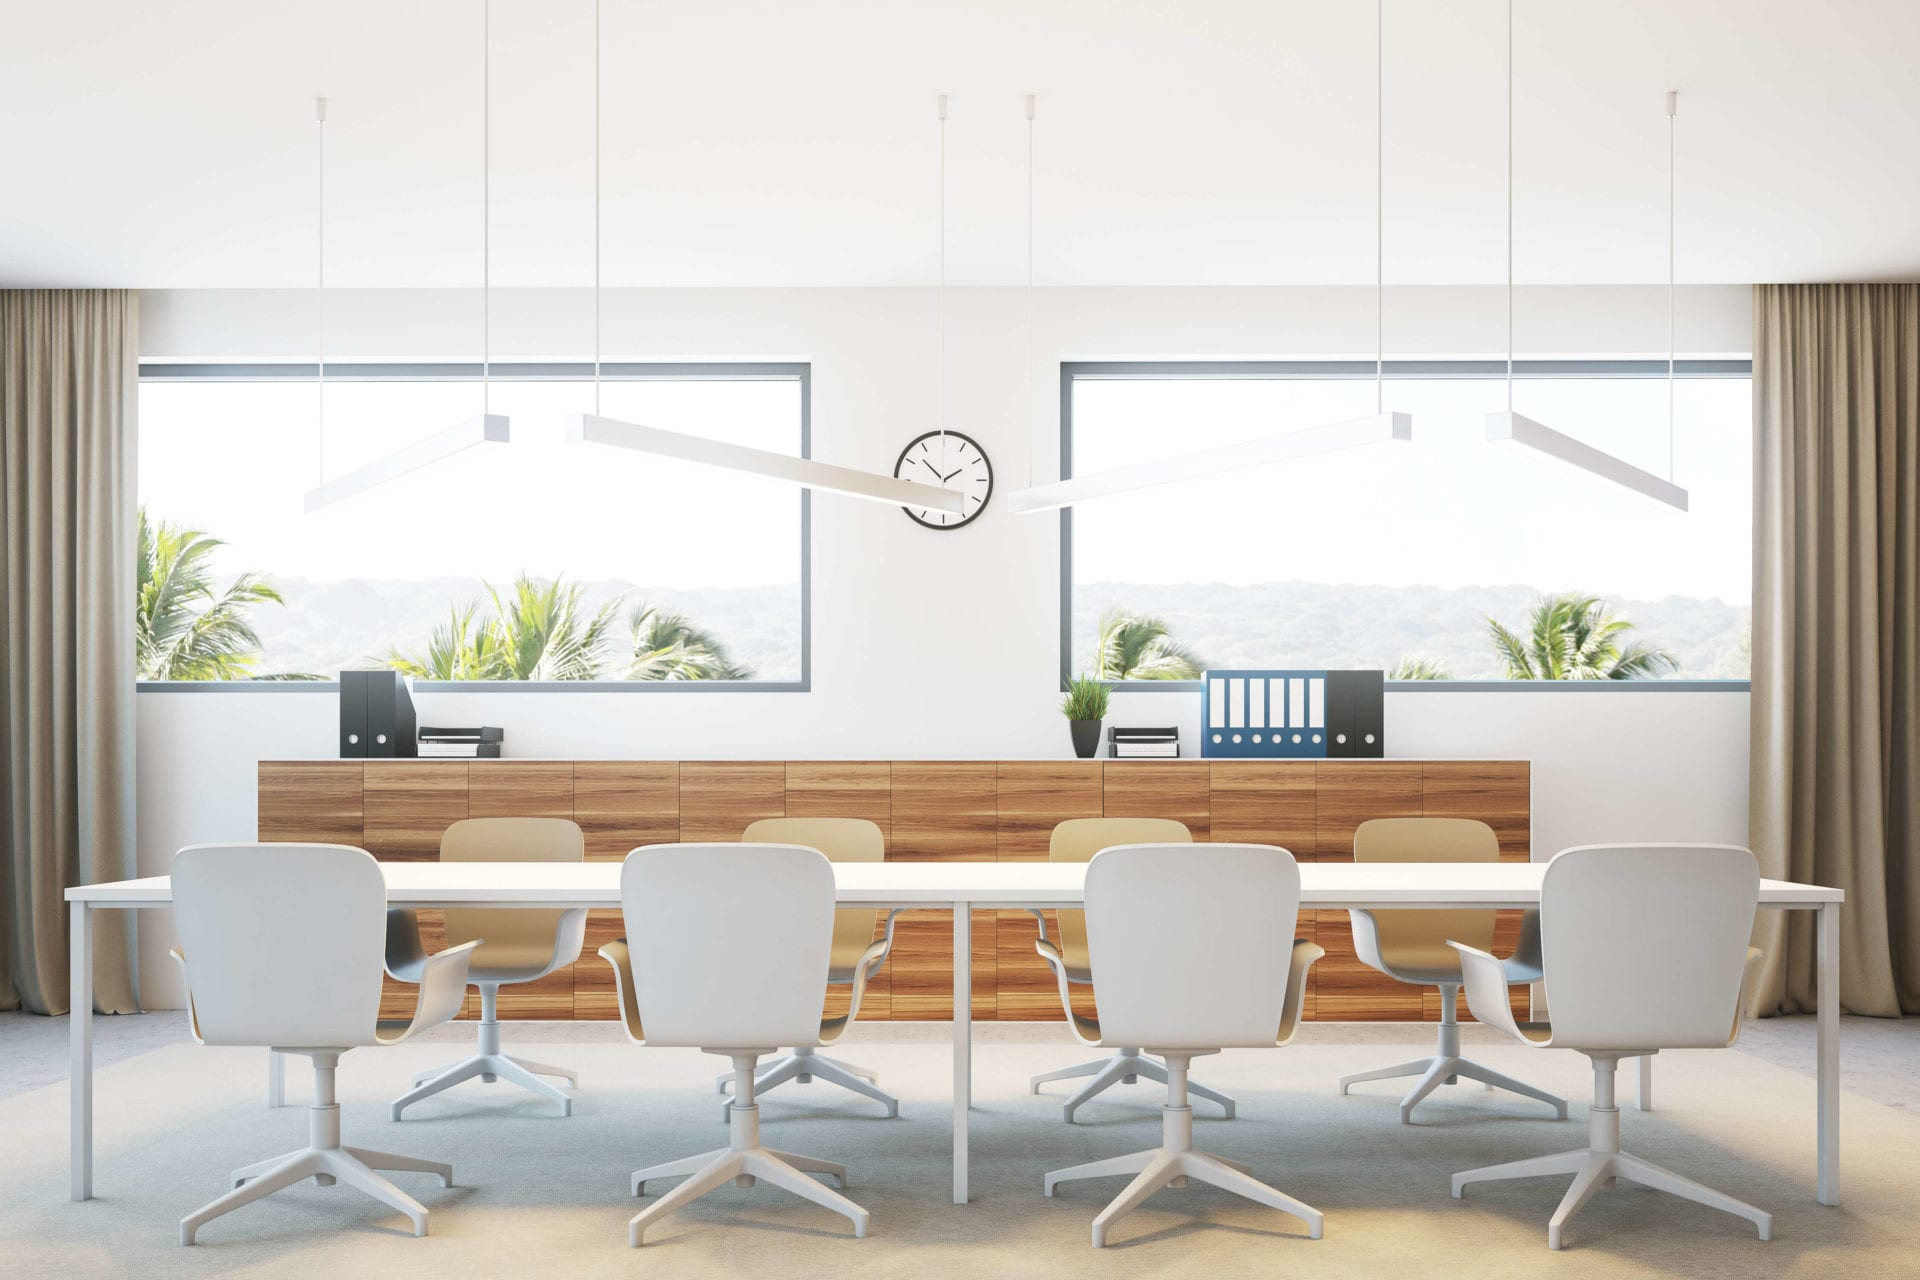 Clean Minimal conference room with white table and chairs modern overhead lighting